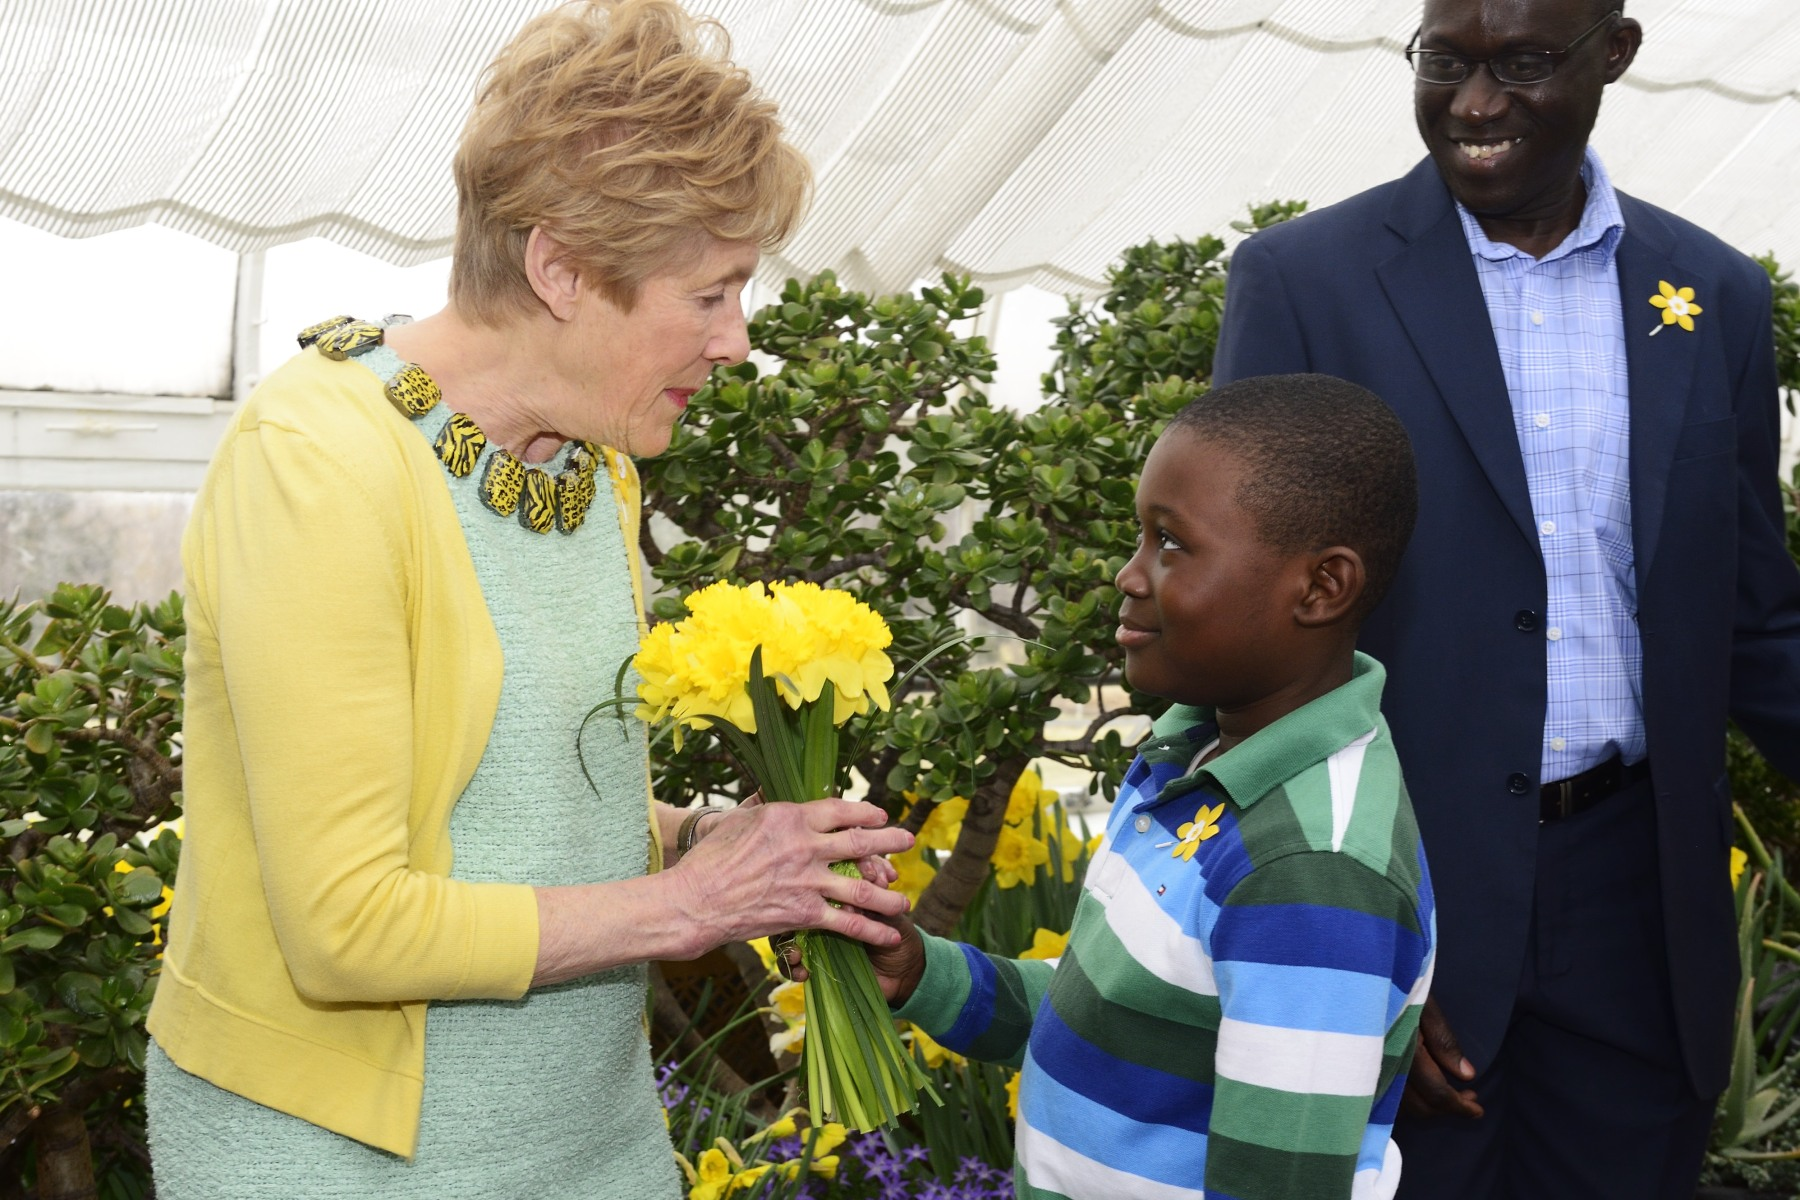 Mrs. Johnston received a bouquet of daffodils from cancer patient Melvic Affi, who is 8 years old.